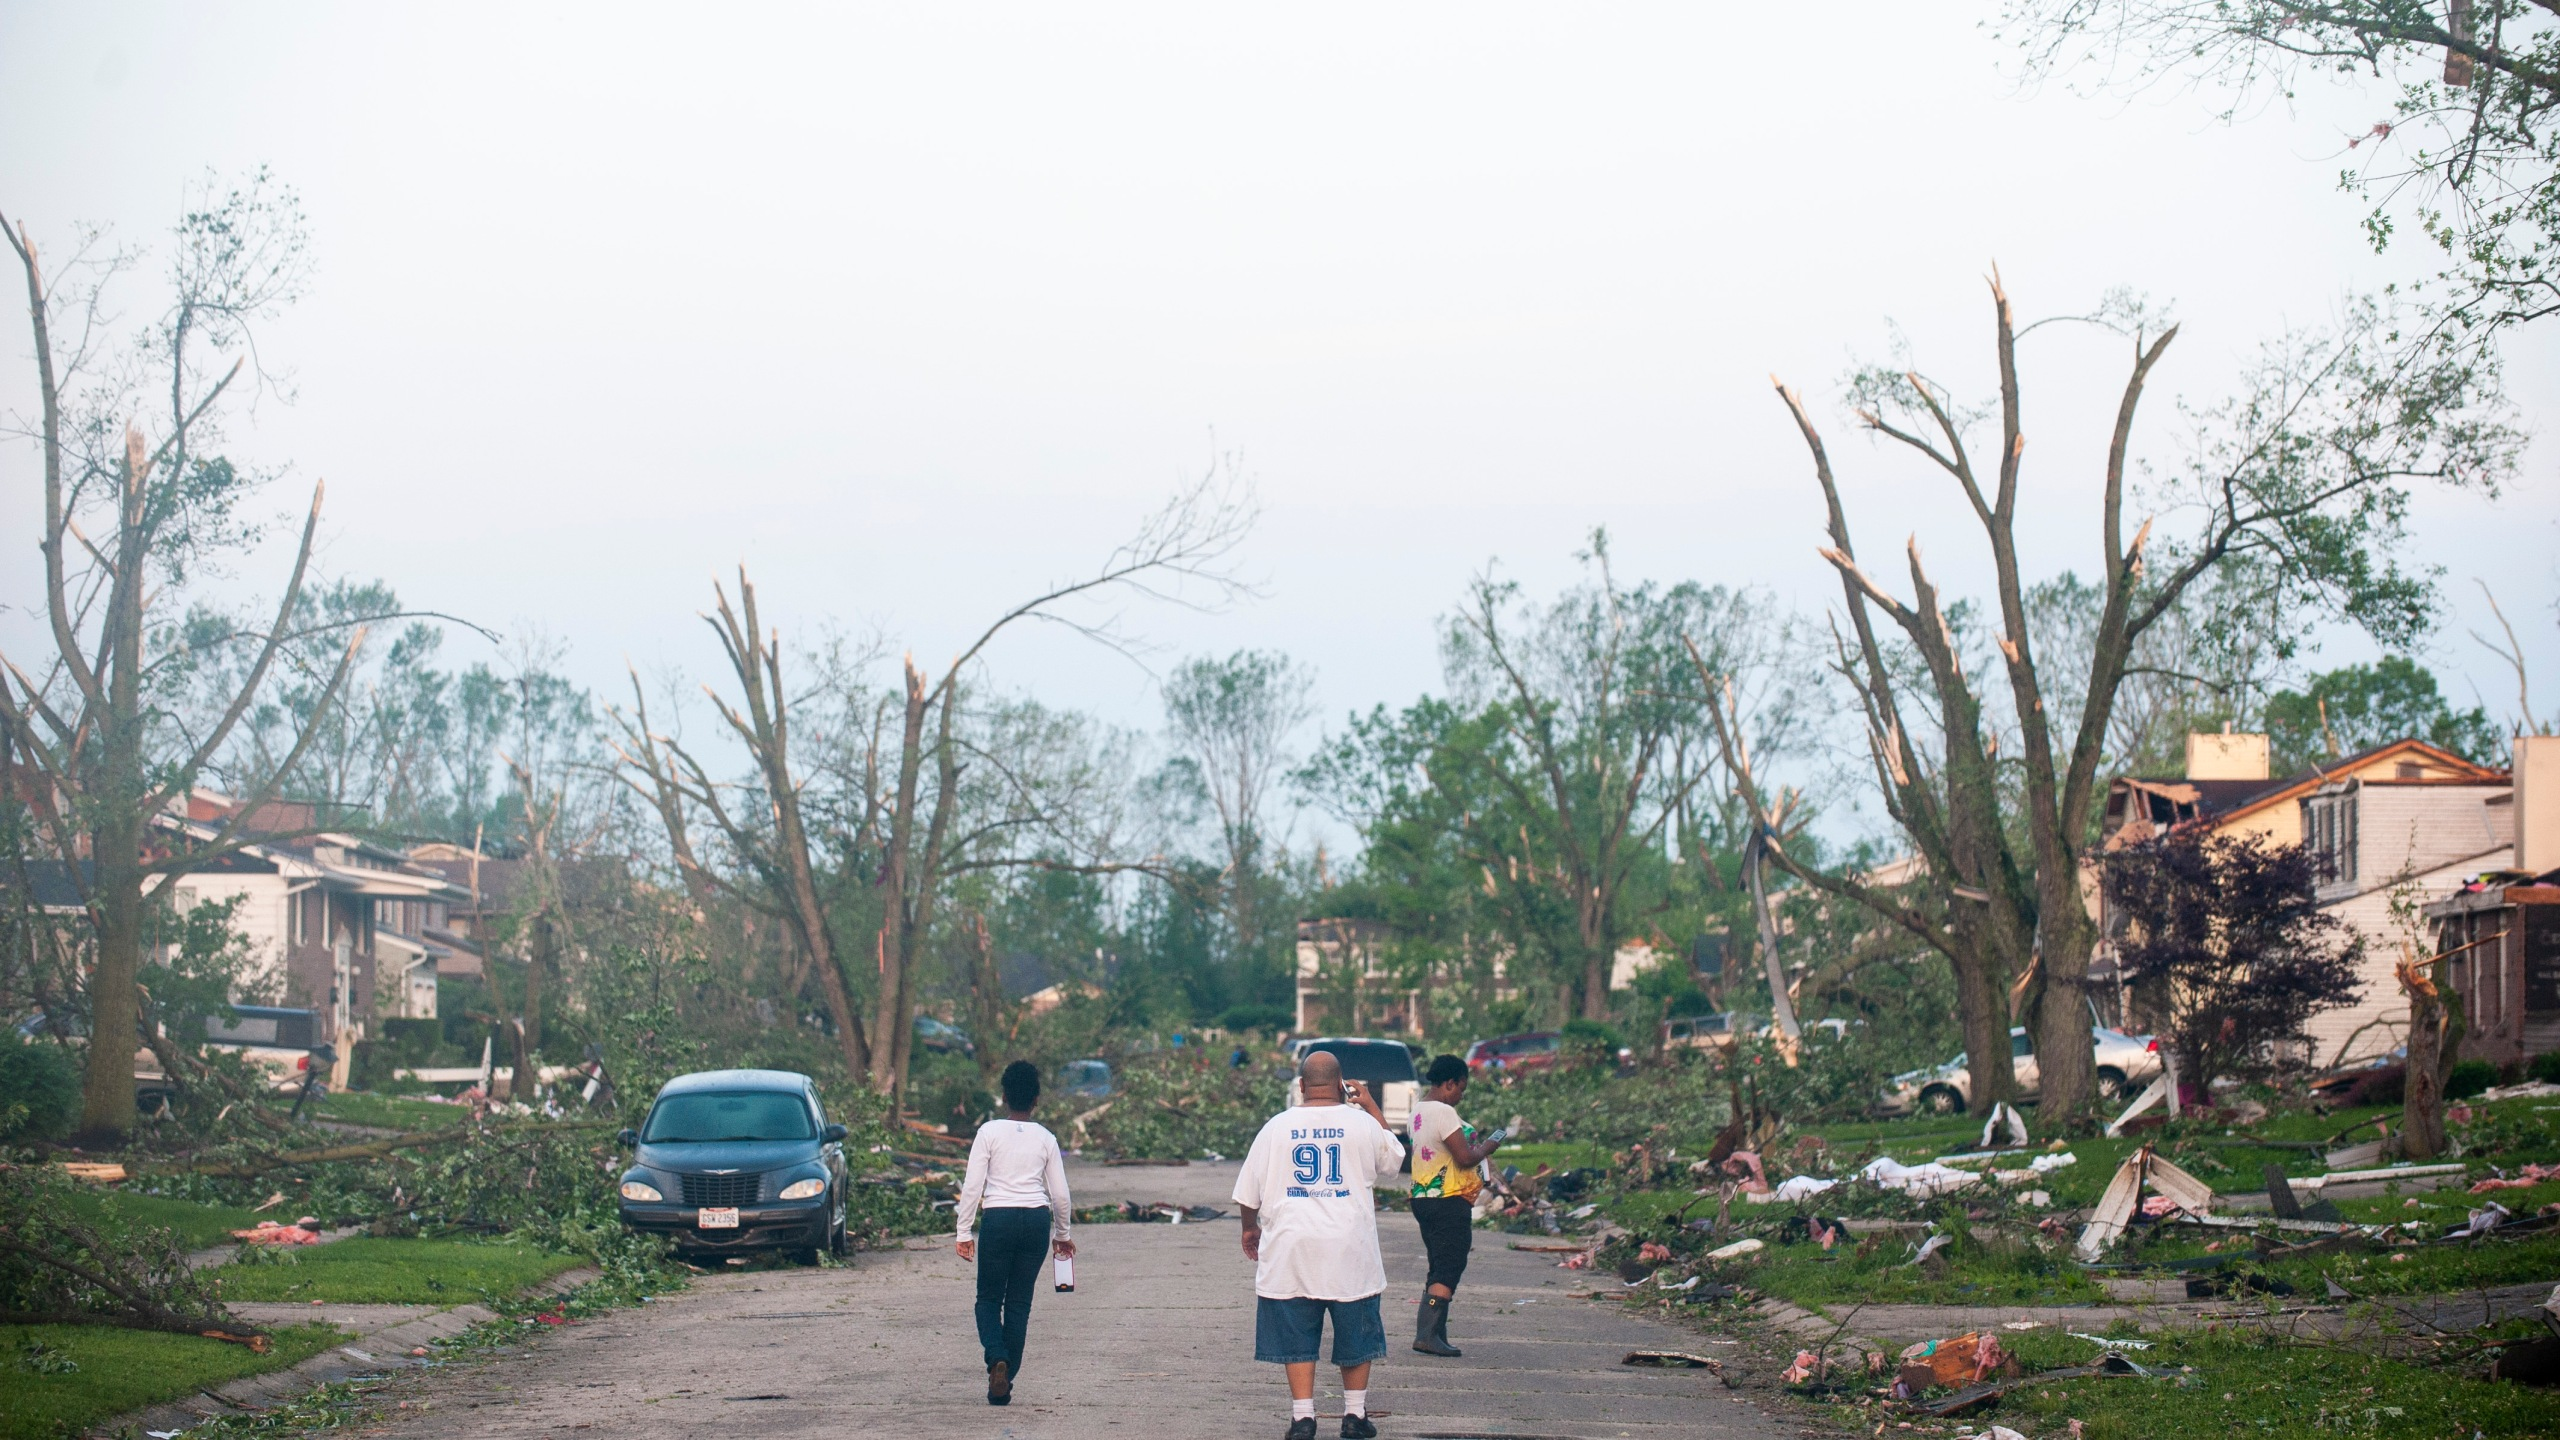 Residents of the West Brook neighborhood emerge from shelter to inspect the damage in their neighborhood after a tornado touched down the morning of May 28, 2019, in Trotwood, Ohio. (Credit: Matthew Hatcher/Getty Images)